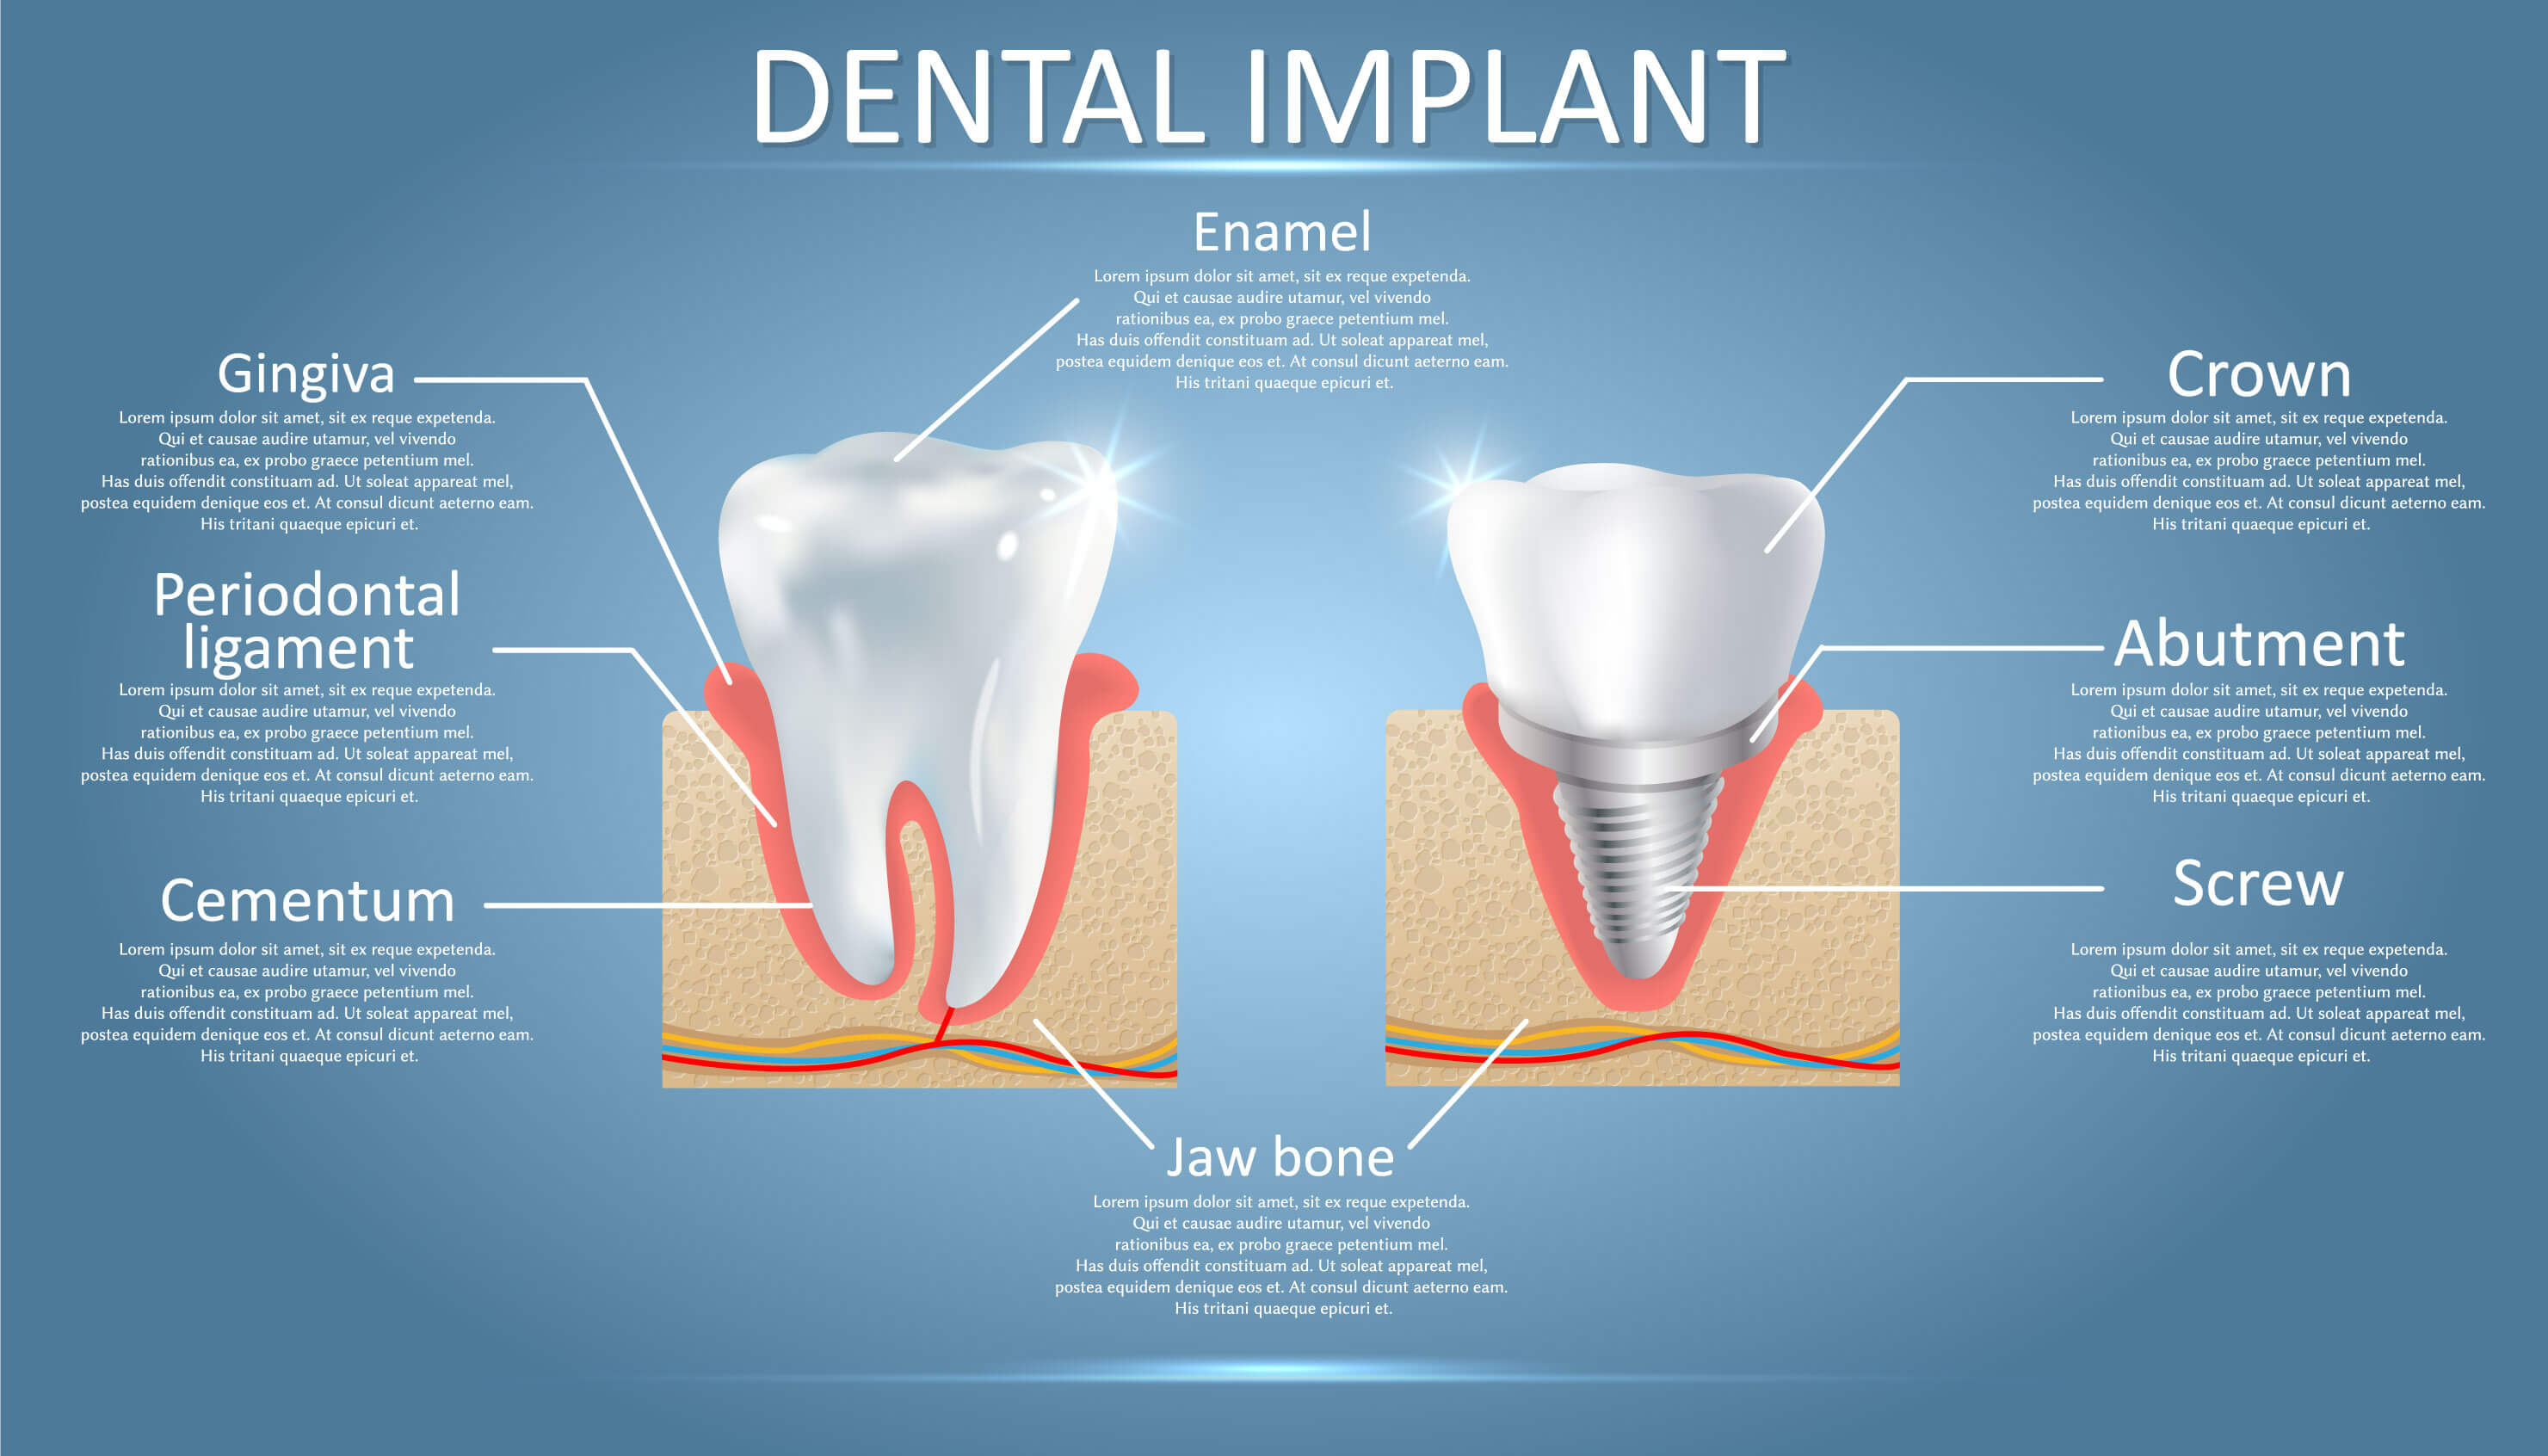 healthy tooth and dental implant side by side